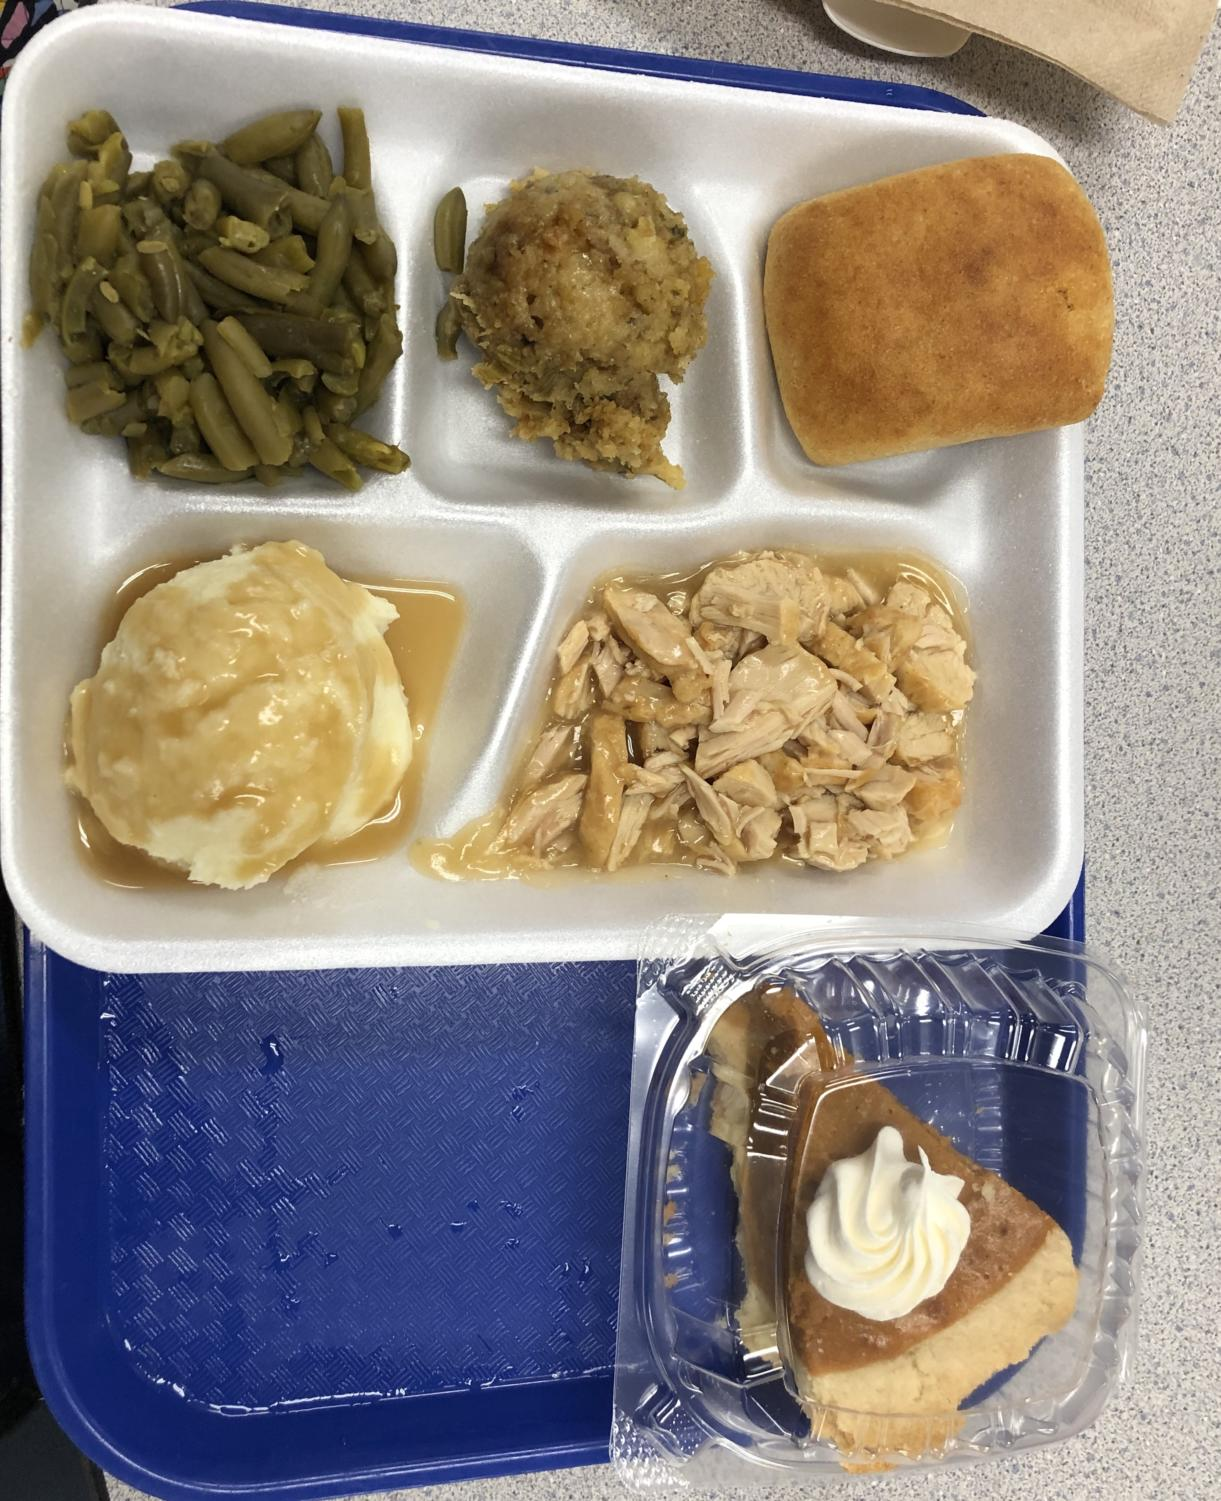 The annual Thanksgiving style meal at Holt.